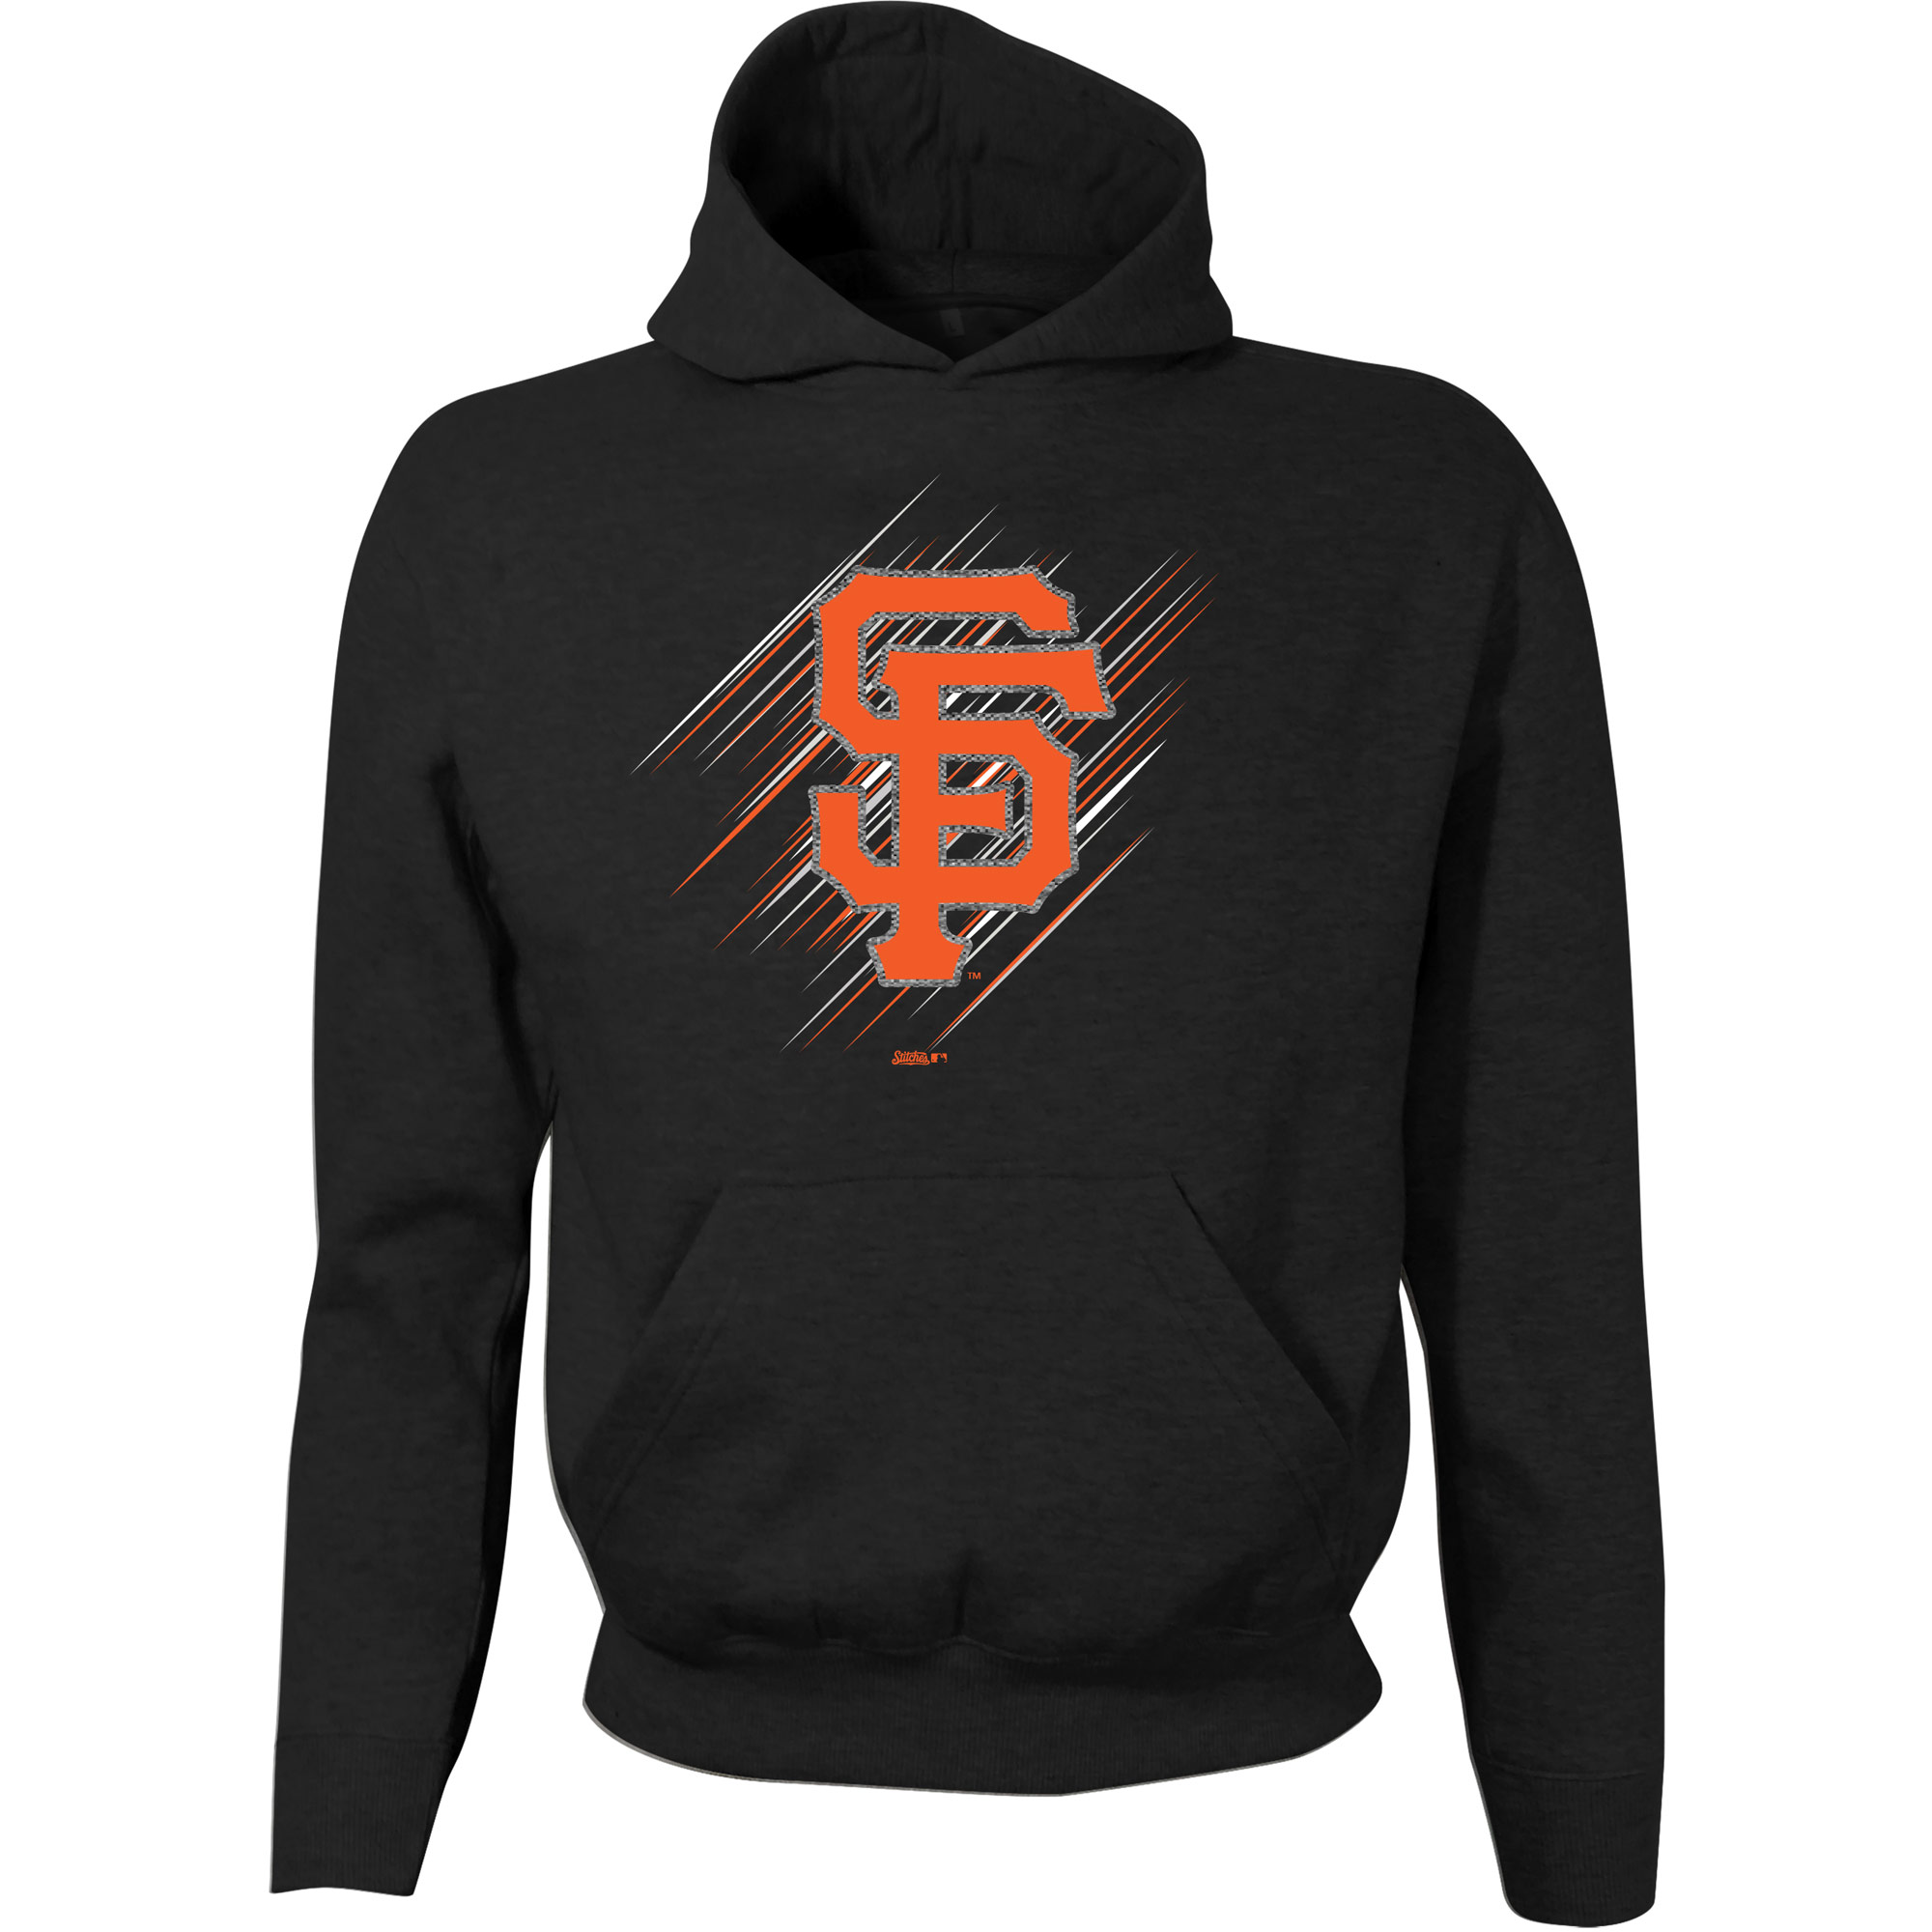 San Francisco Giants Stitches Youth Pullover Hoodie - Black